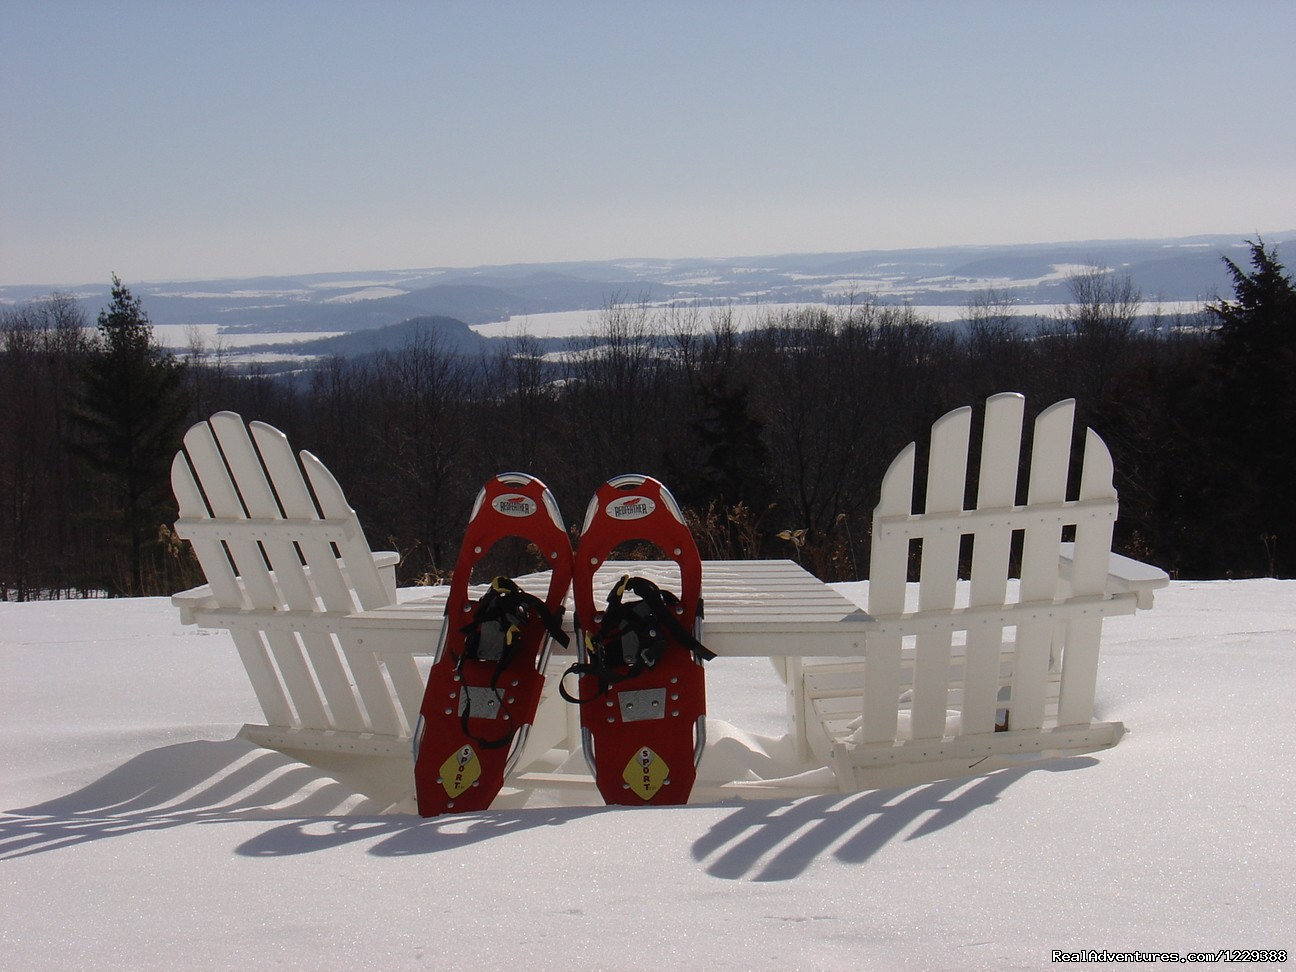 Snowshoeing in the Baraboo Bluffs | Image #5/20 | Inn at Wawanissee Point